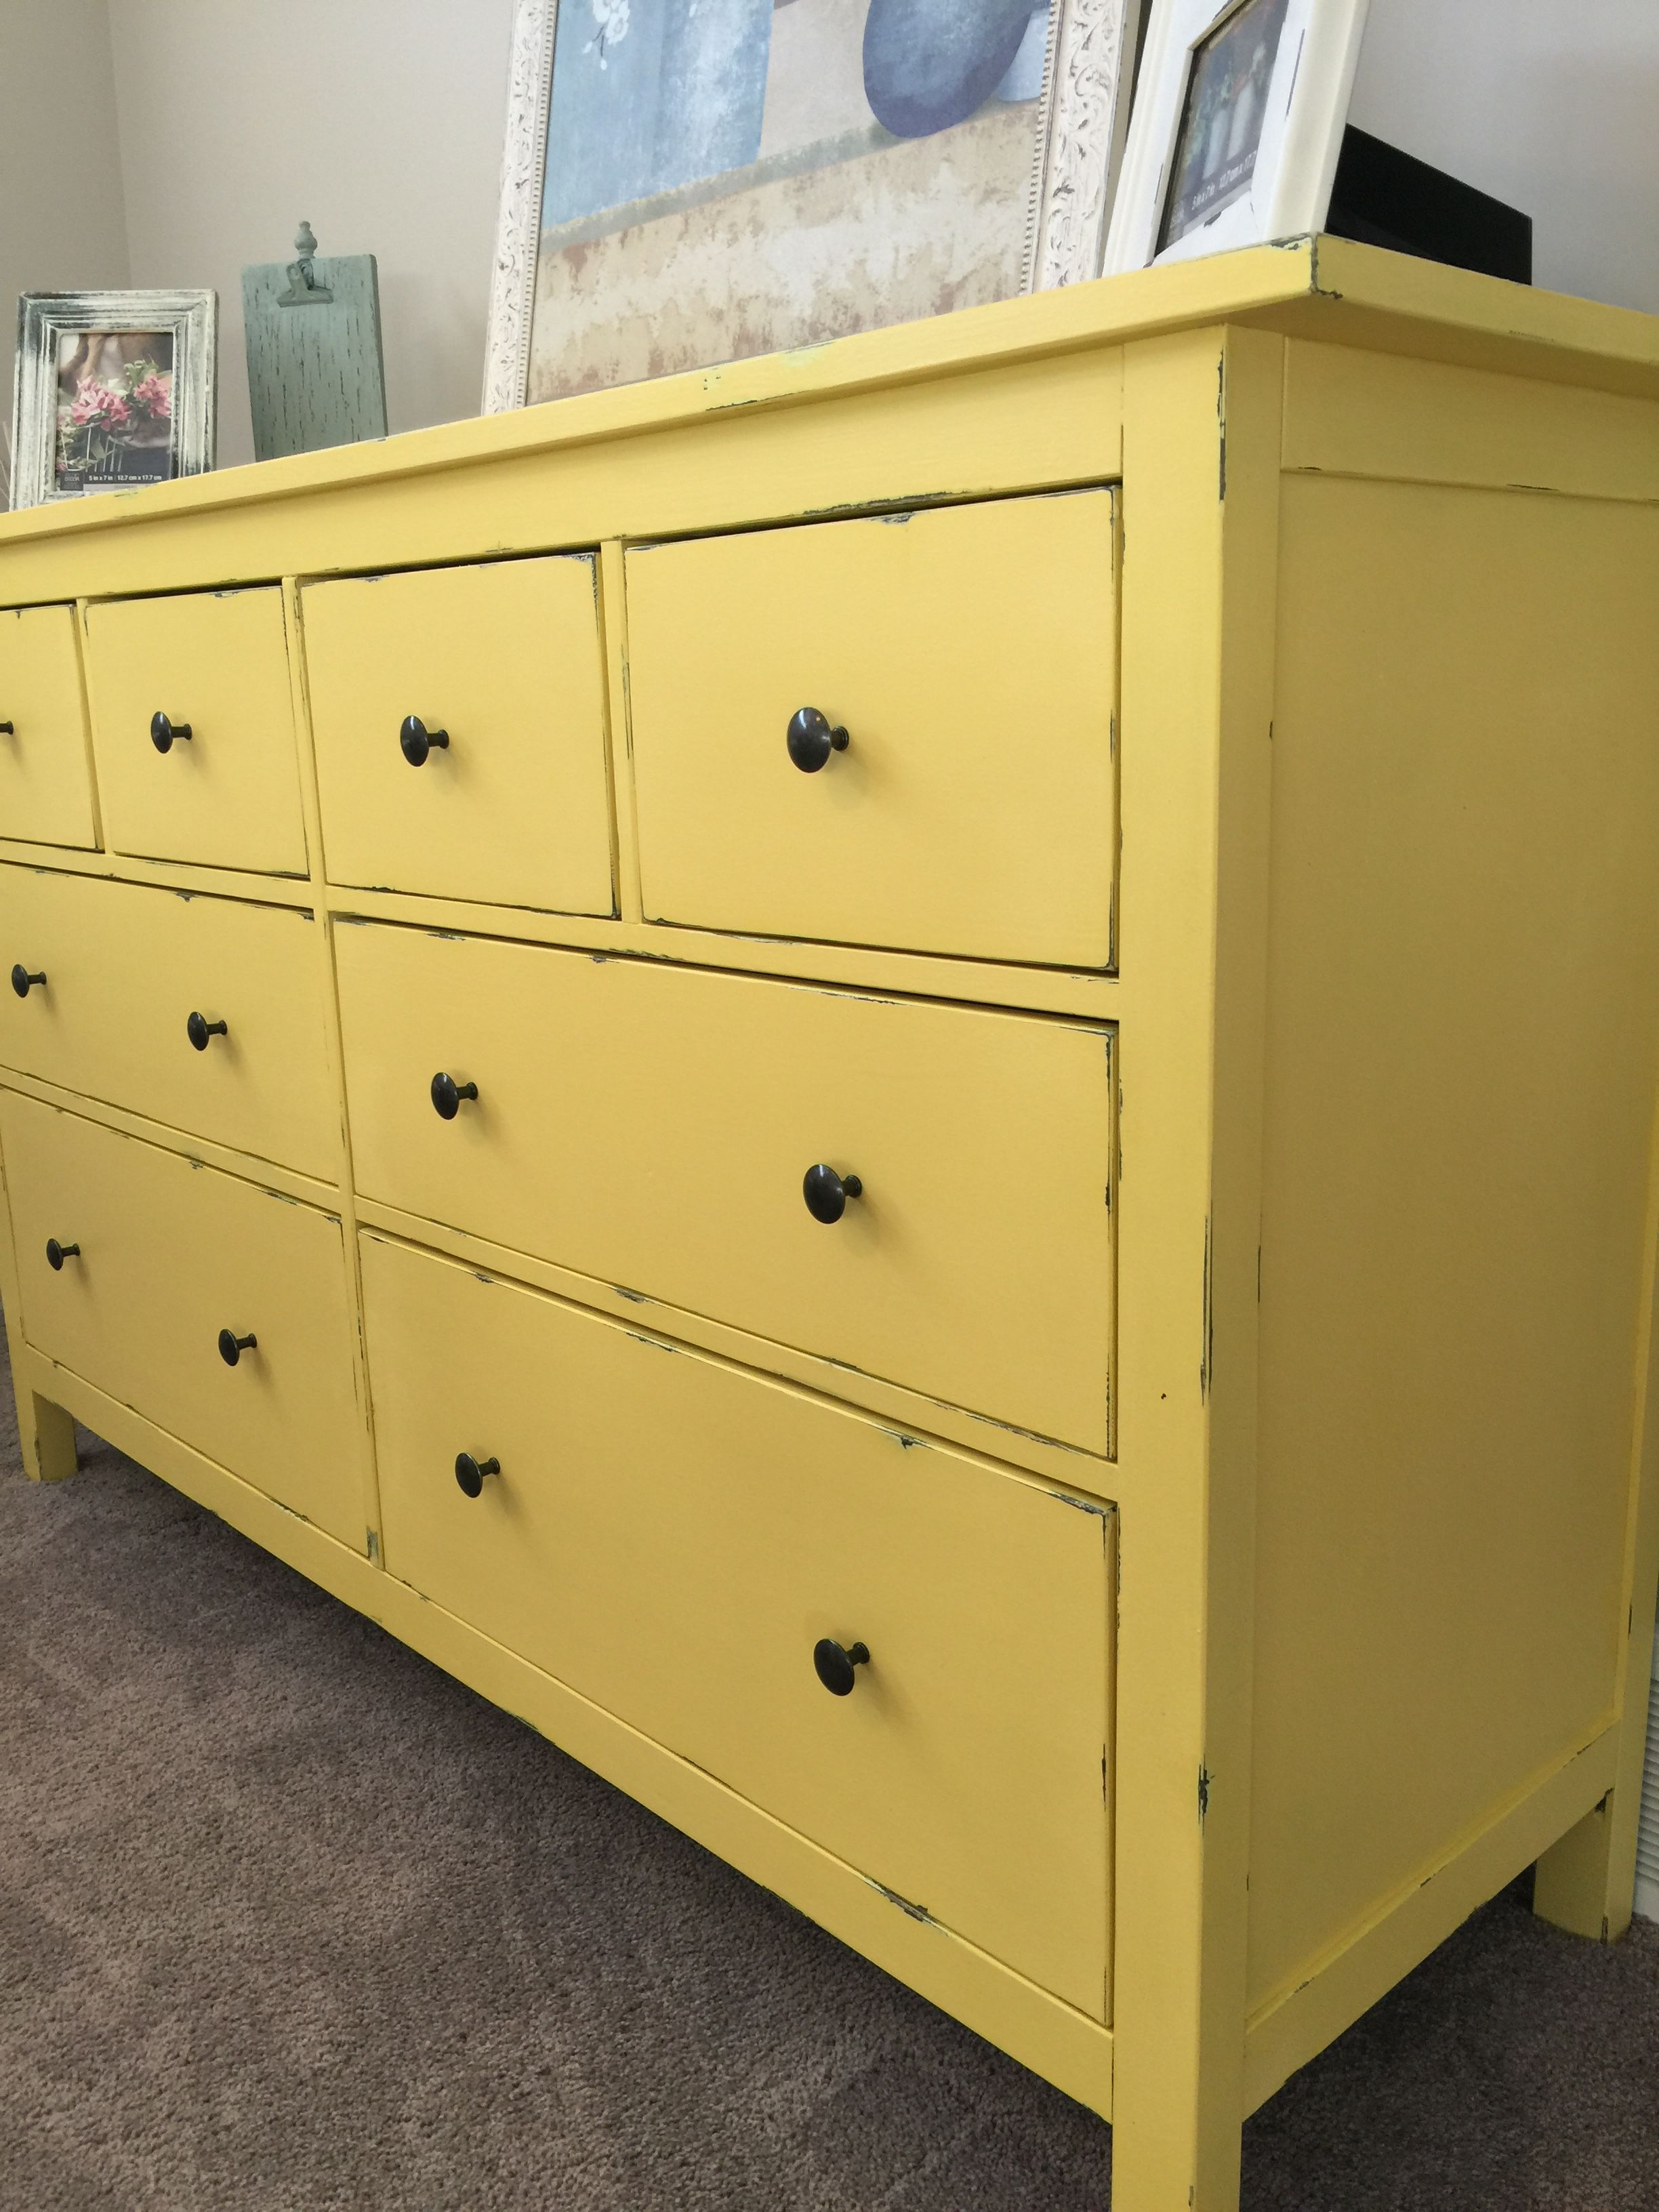 Refurbished IKEA Hemnes dresser Totes doing this for a pop of sunshine in the nursery! Tiny